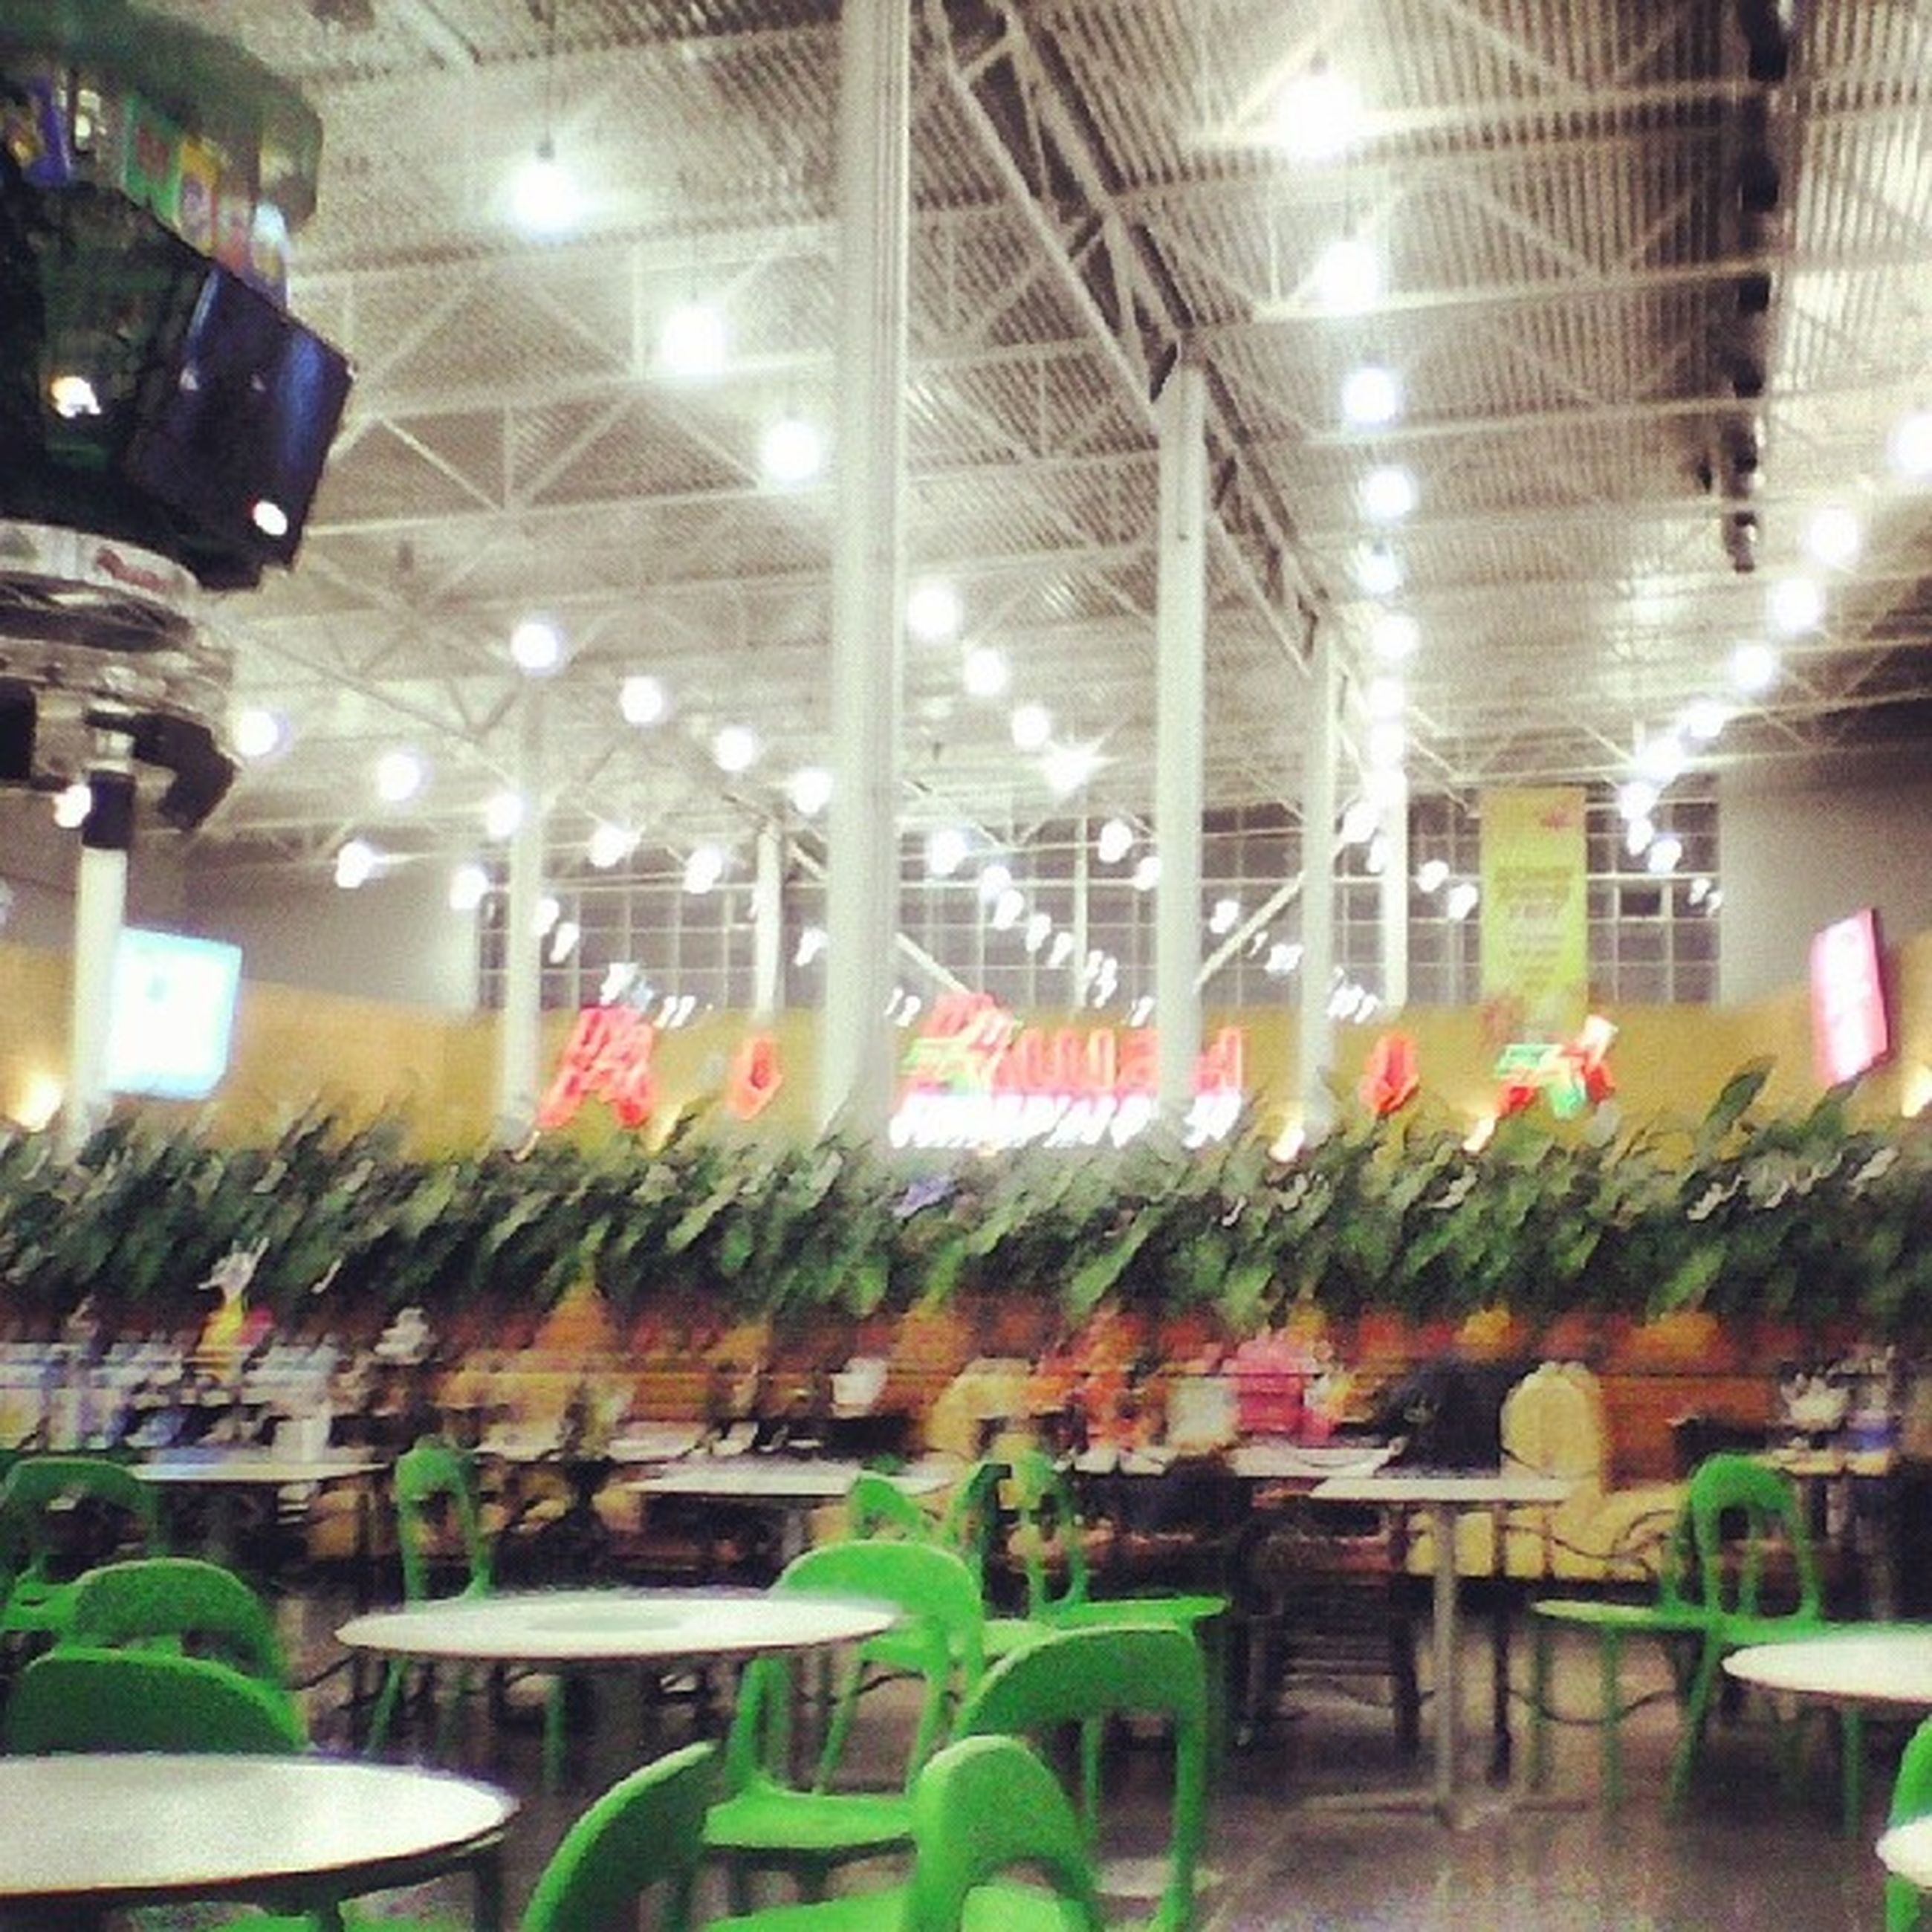 indoors, illuminated, incidental people, lighting equipment, glass - material, night, restaurant, arrangement, reflection, decoration, table, for sale, variation, large group of objects, chair, freshness, retail, potted plant, abundance, ceiling